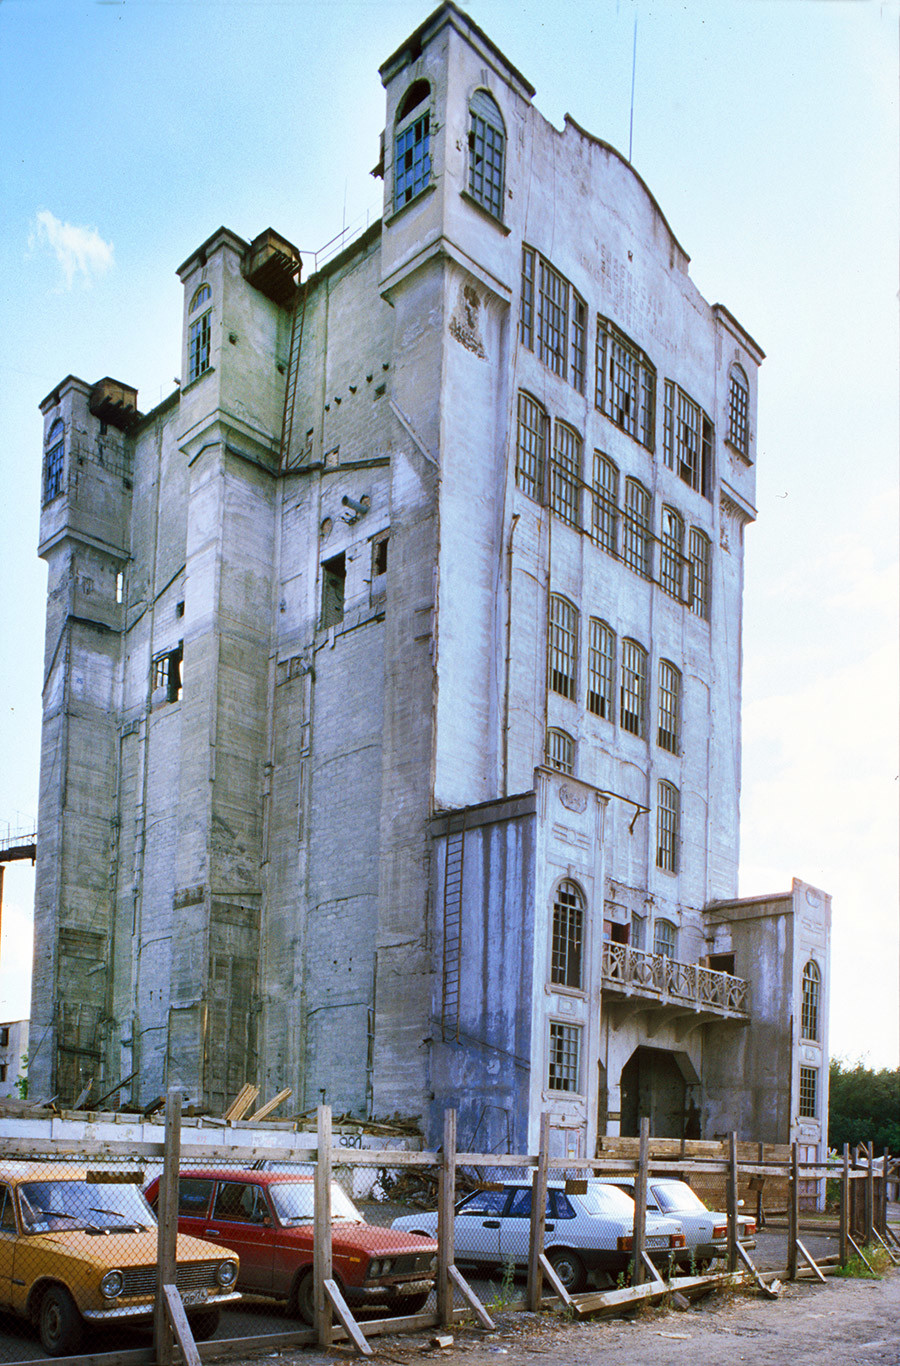 State Bank Grain Elevator. Built in 1914-16 with advanced reinforced concrete technology as part of a national program for grain storage centers. Used until 1990s, then partially demolished. July 12, 2003.